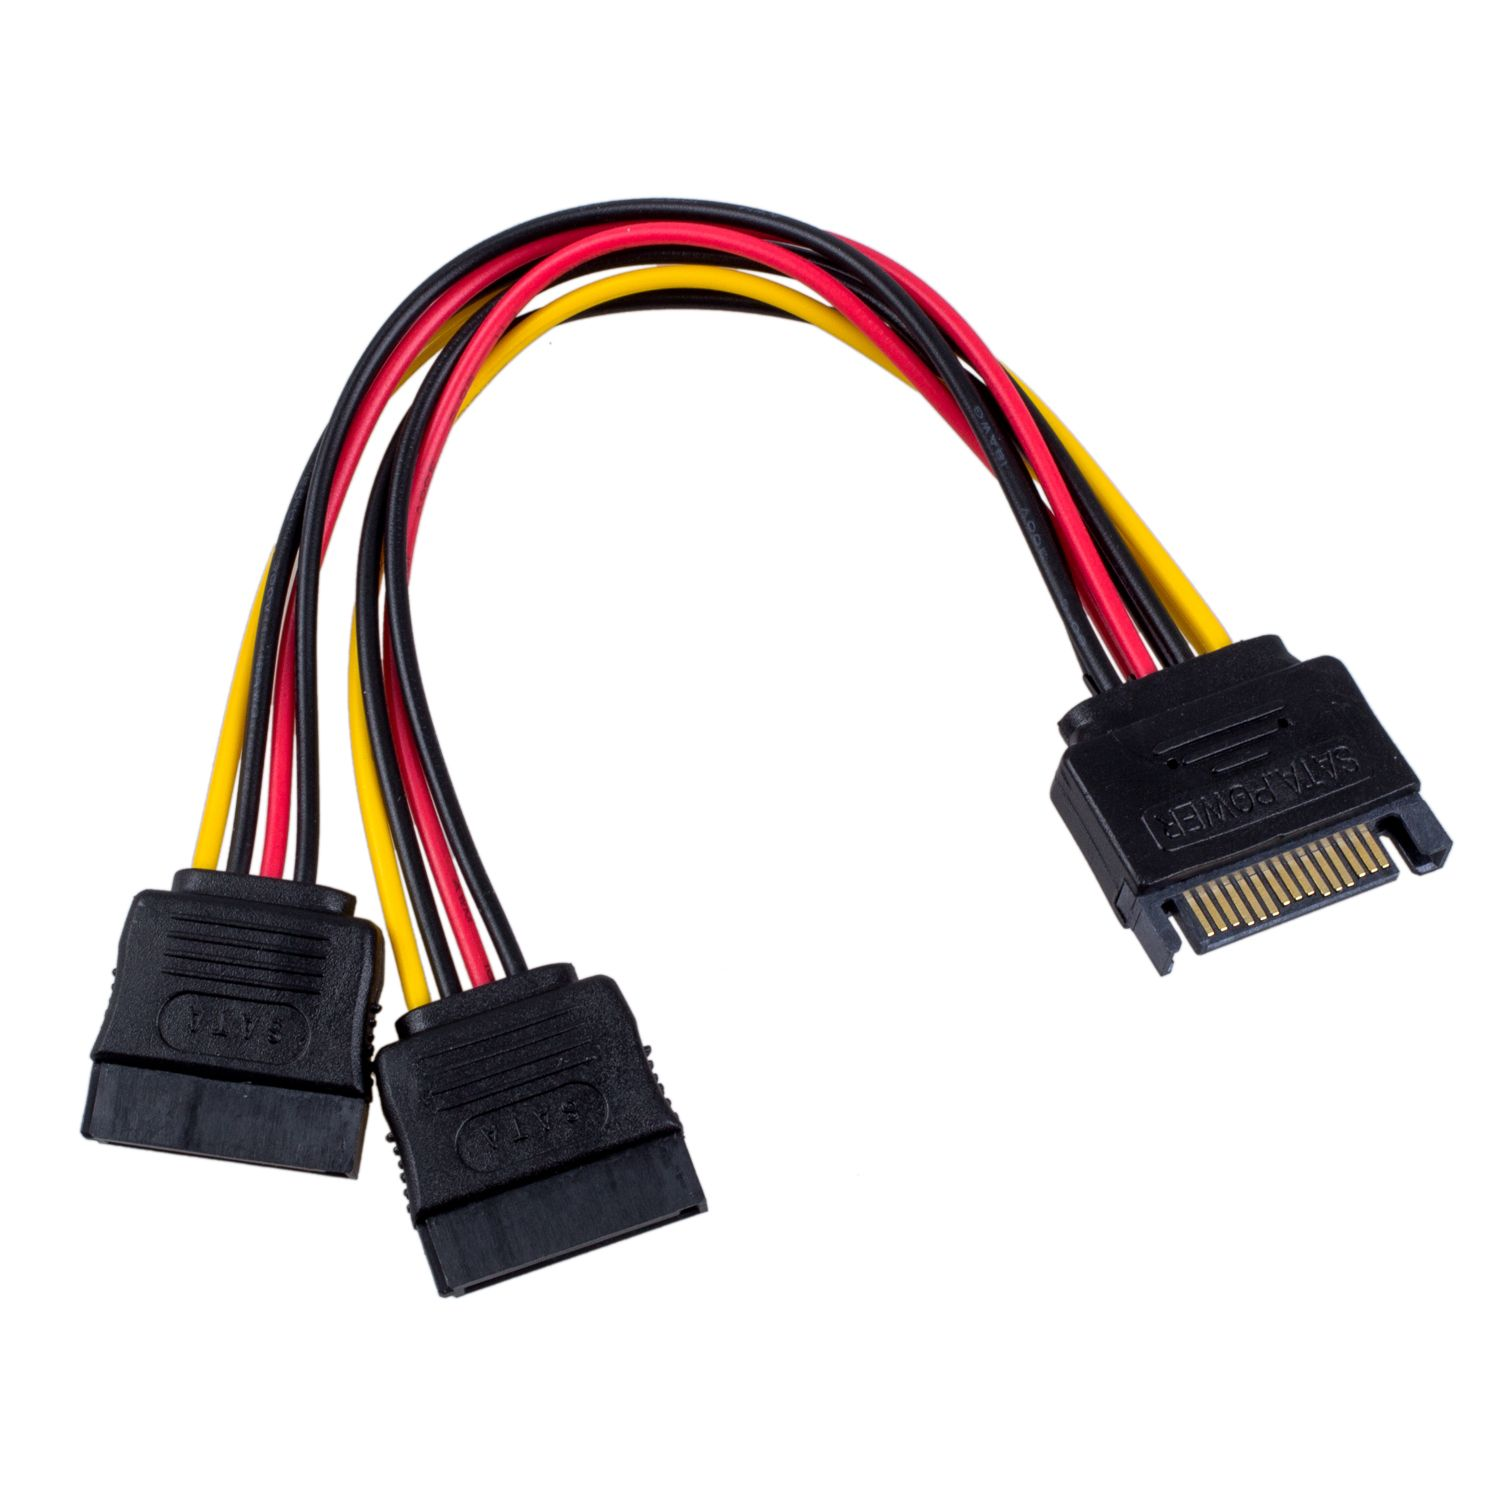 SATA male power connector to Y SATA female power cable